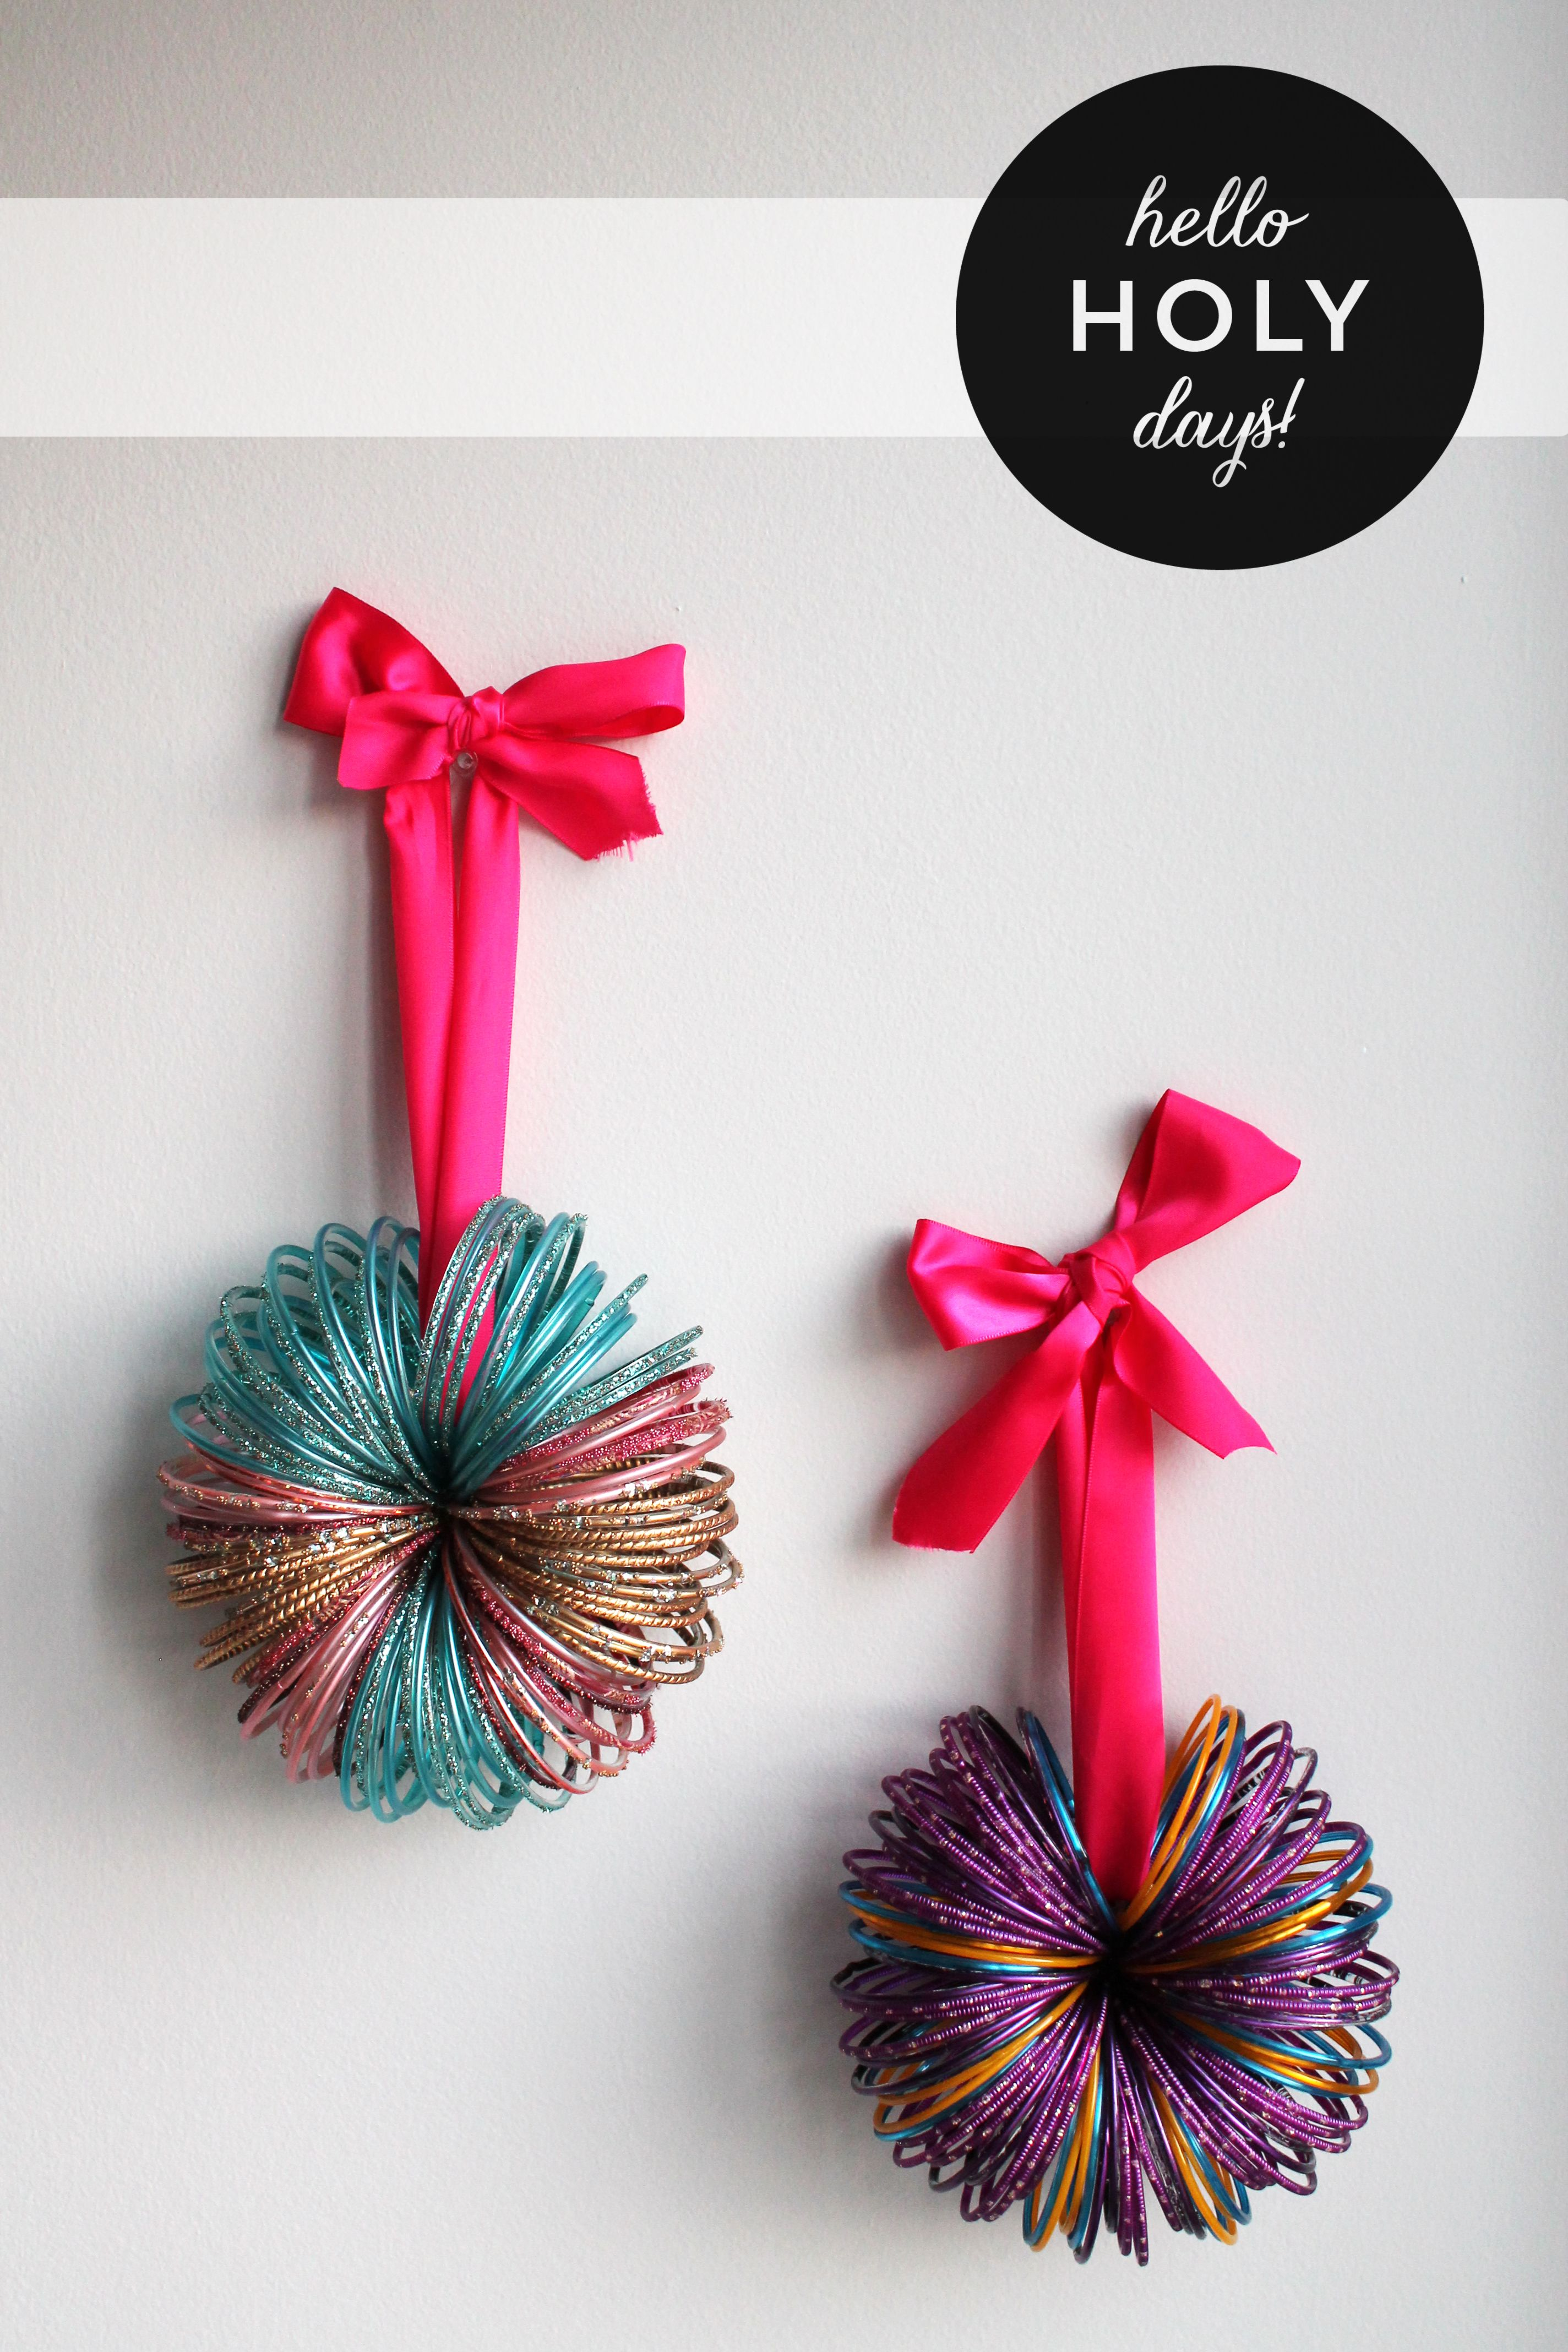 bangles decoration | Diwali | Pinterest | Bangle, Decoration and Diwali